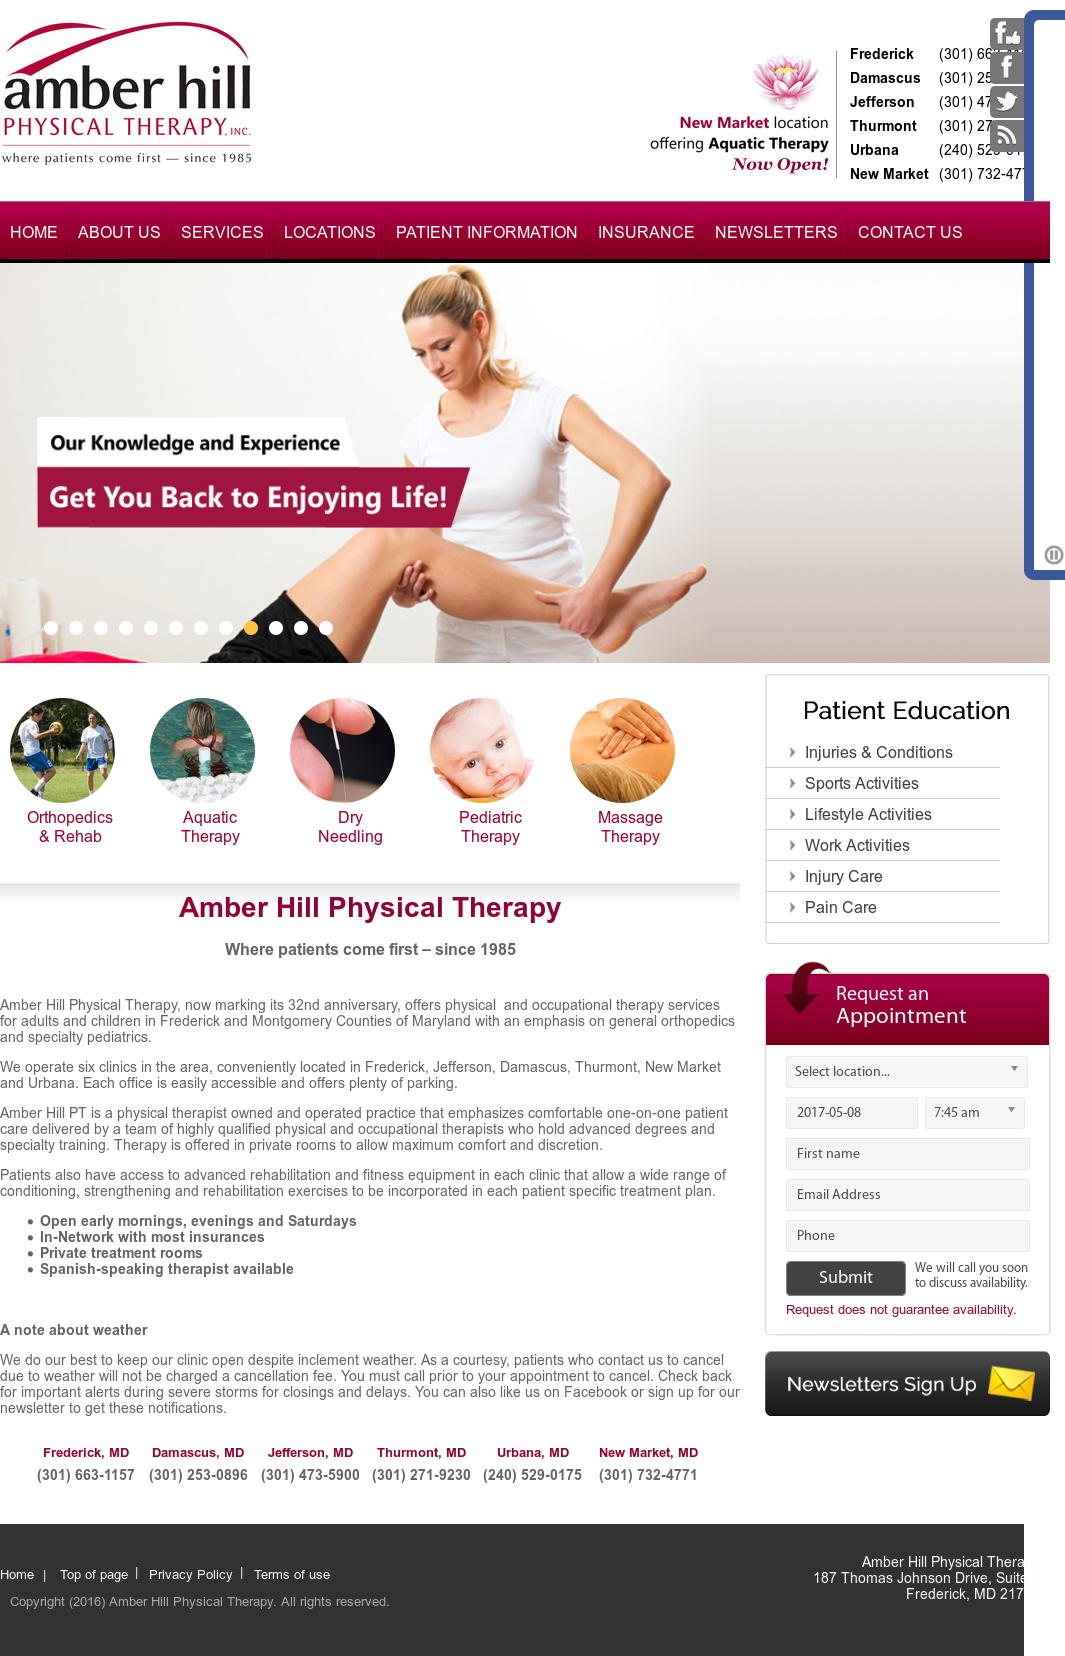 Amber Hill Physical Therapy Competitors, Revenue and